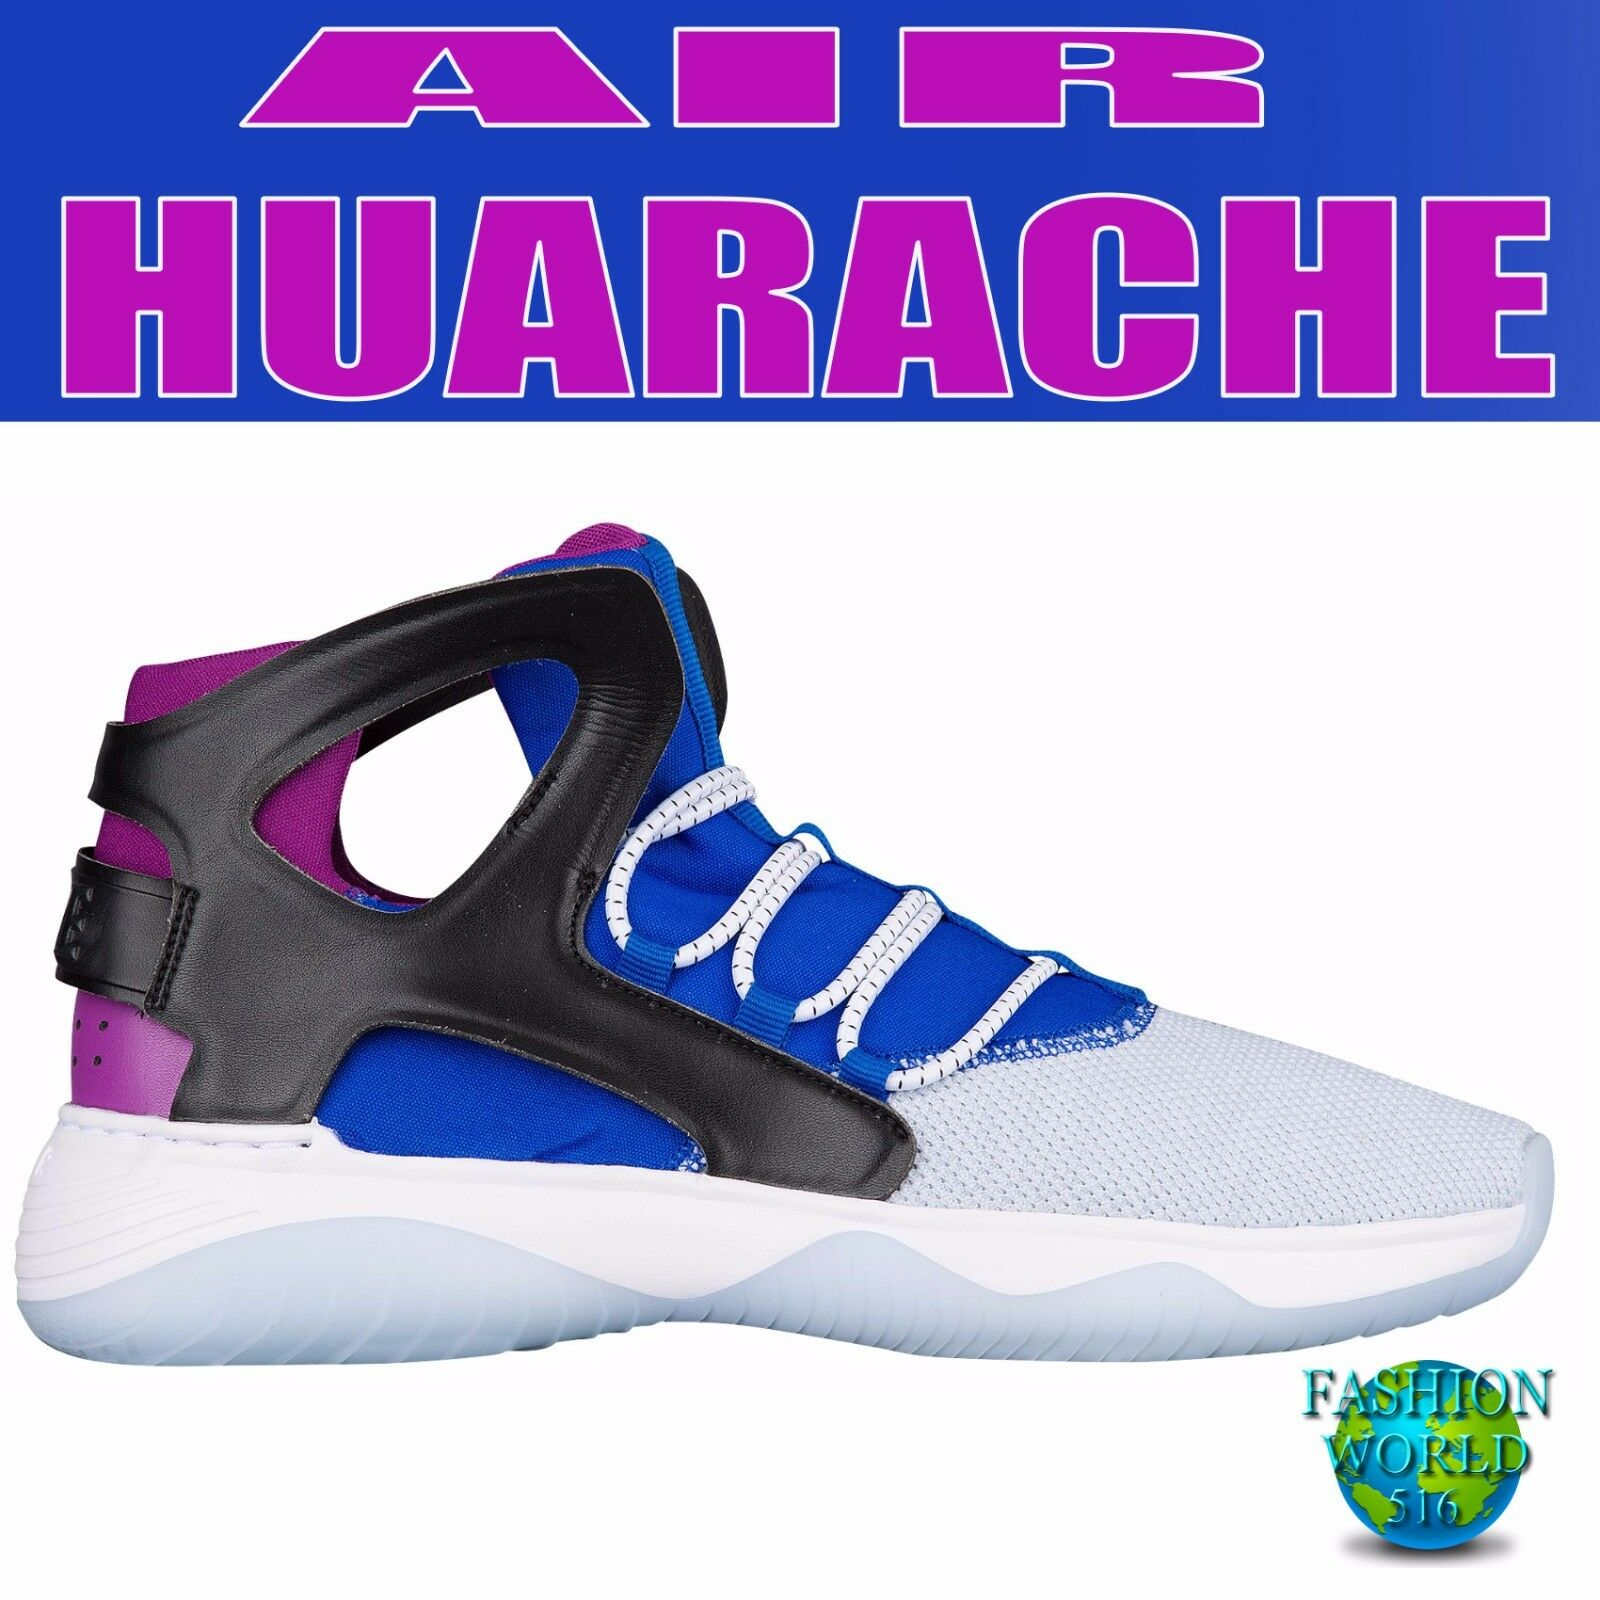 Nike hombre Talla 9 880856 Air flight huarache ultra 880856 9 blanco / negro / azul / Berry 4b5ea6